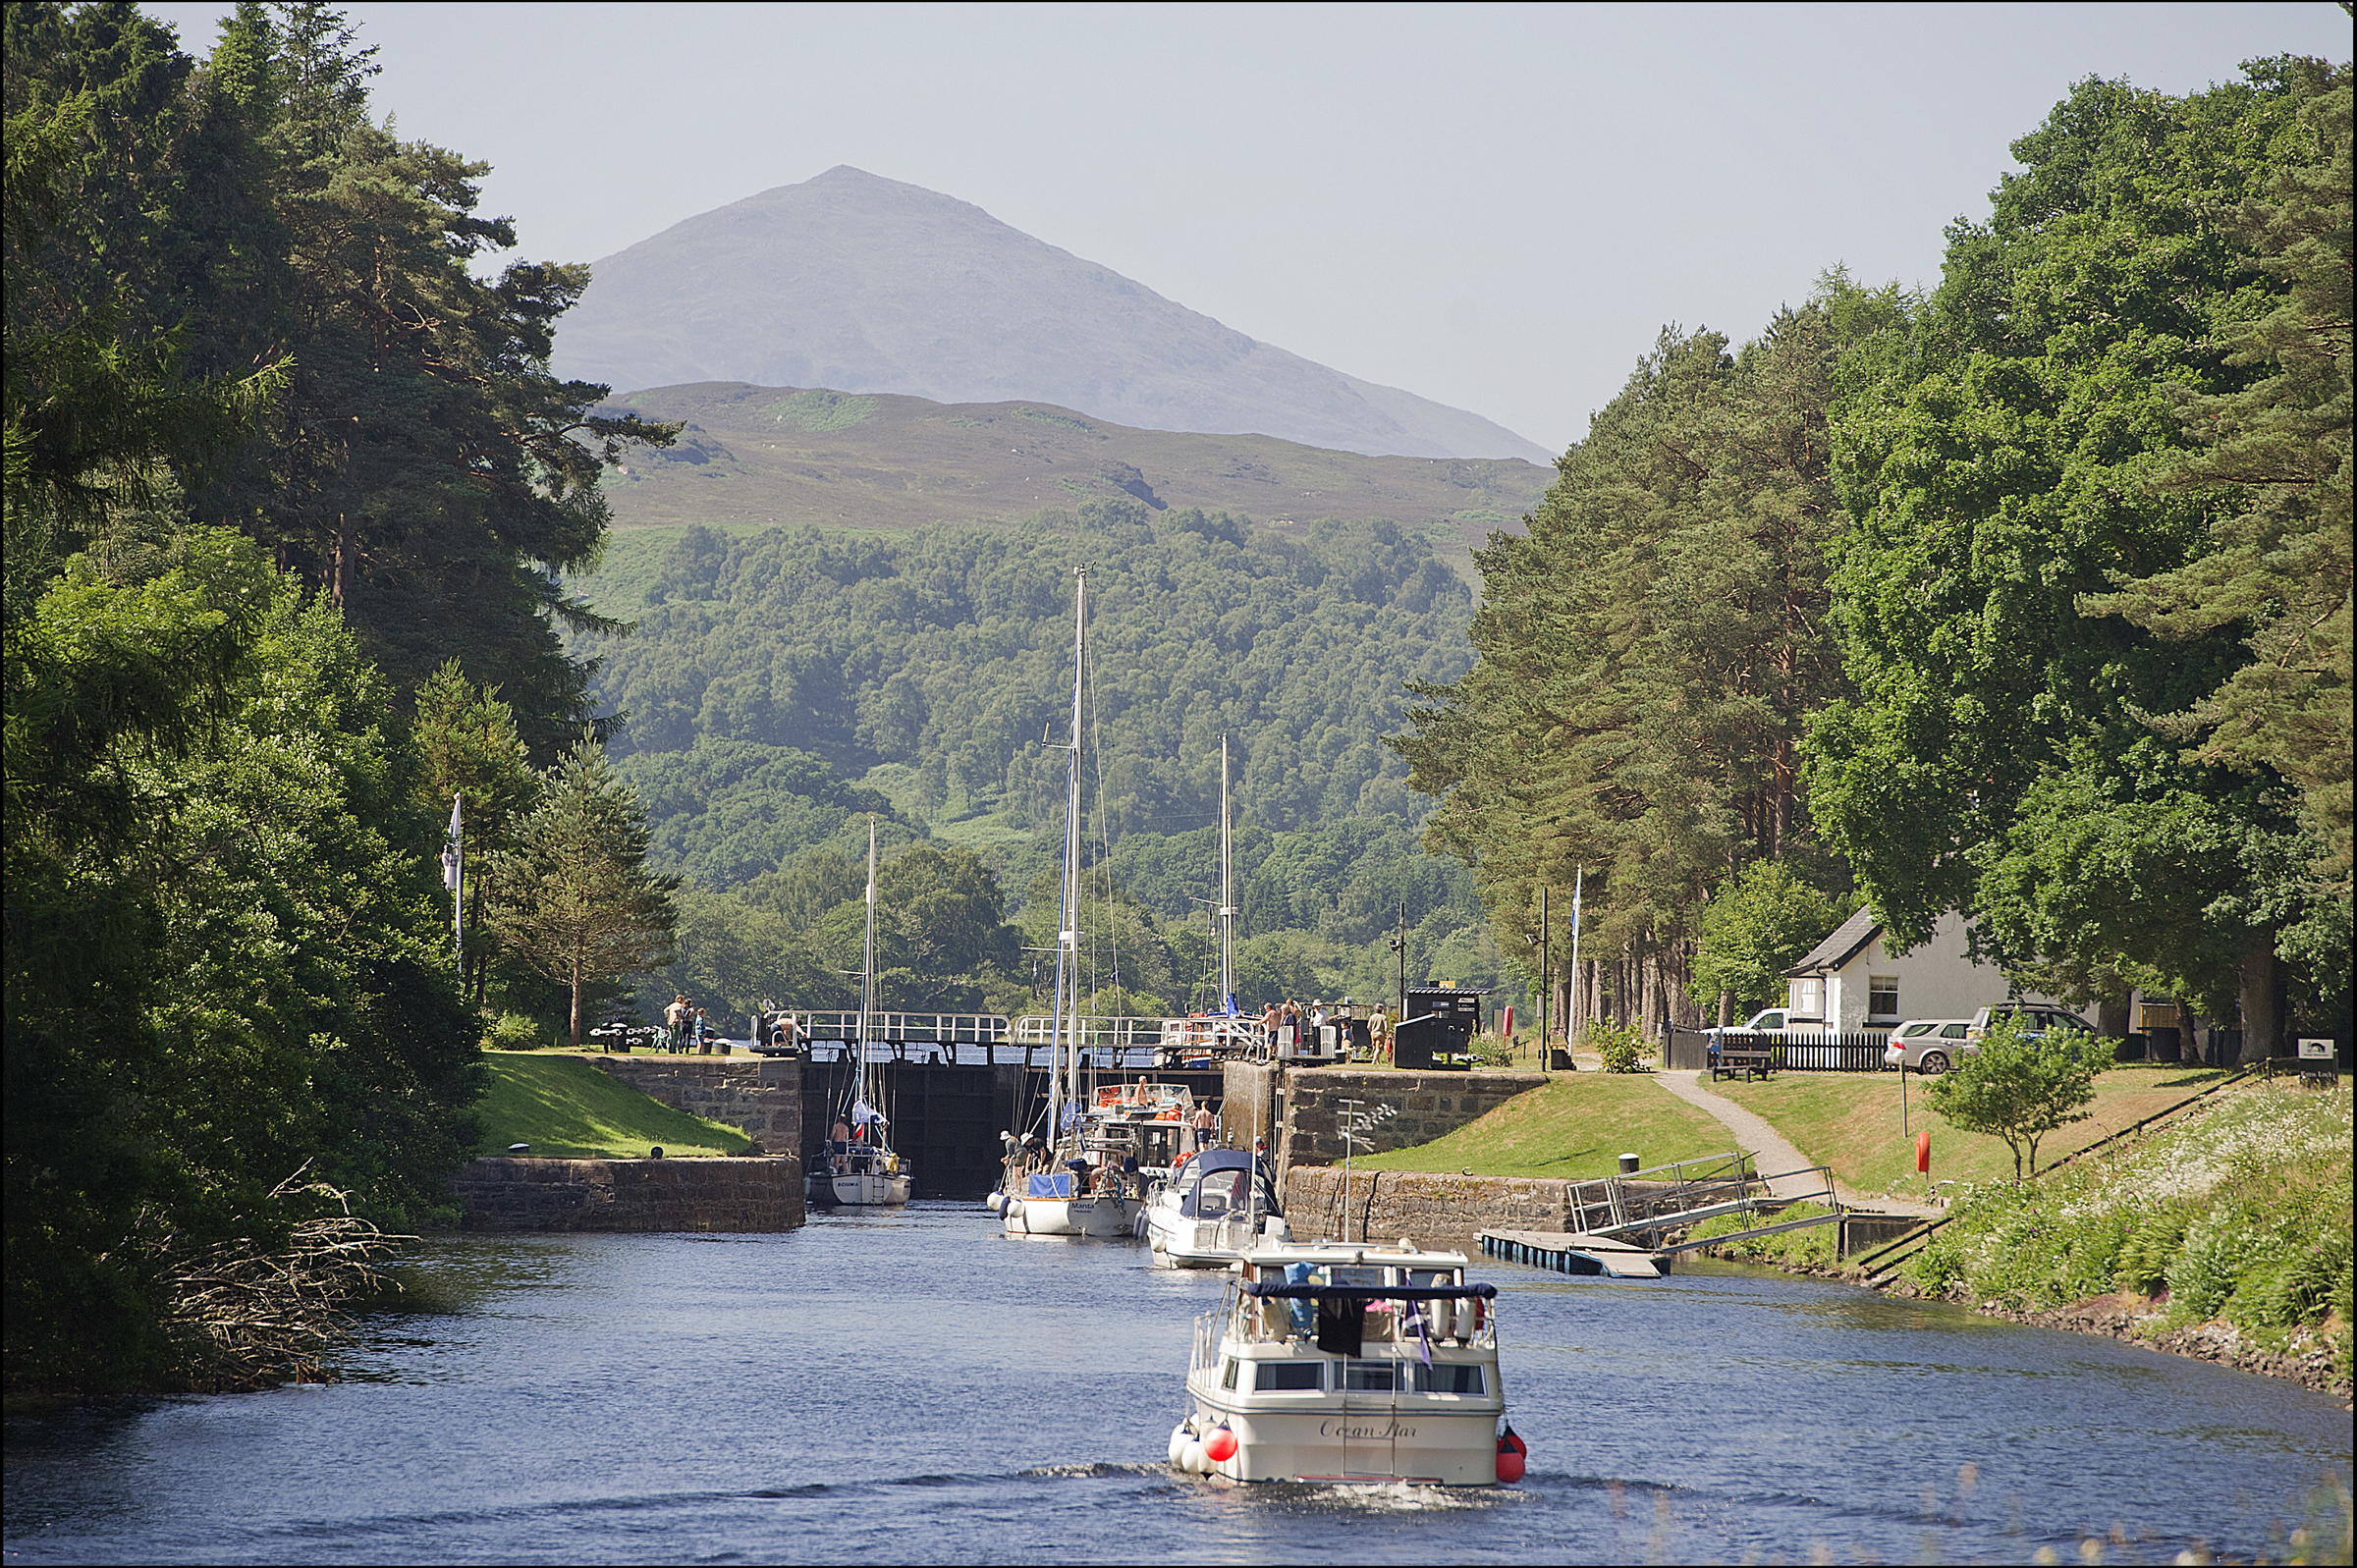 Kytra Lock on the Caledonian Canal.